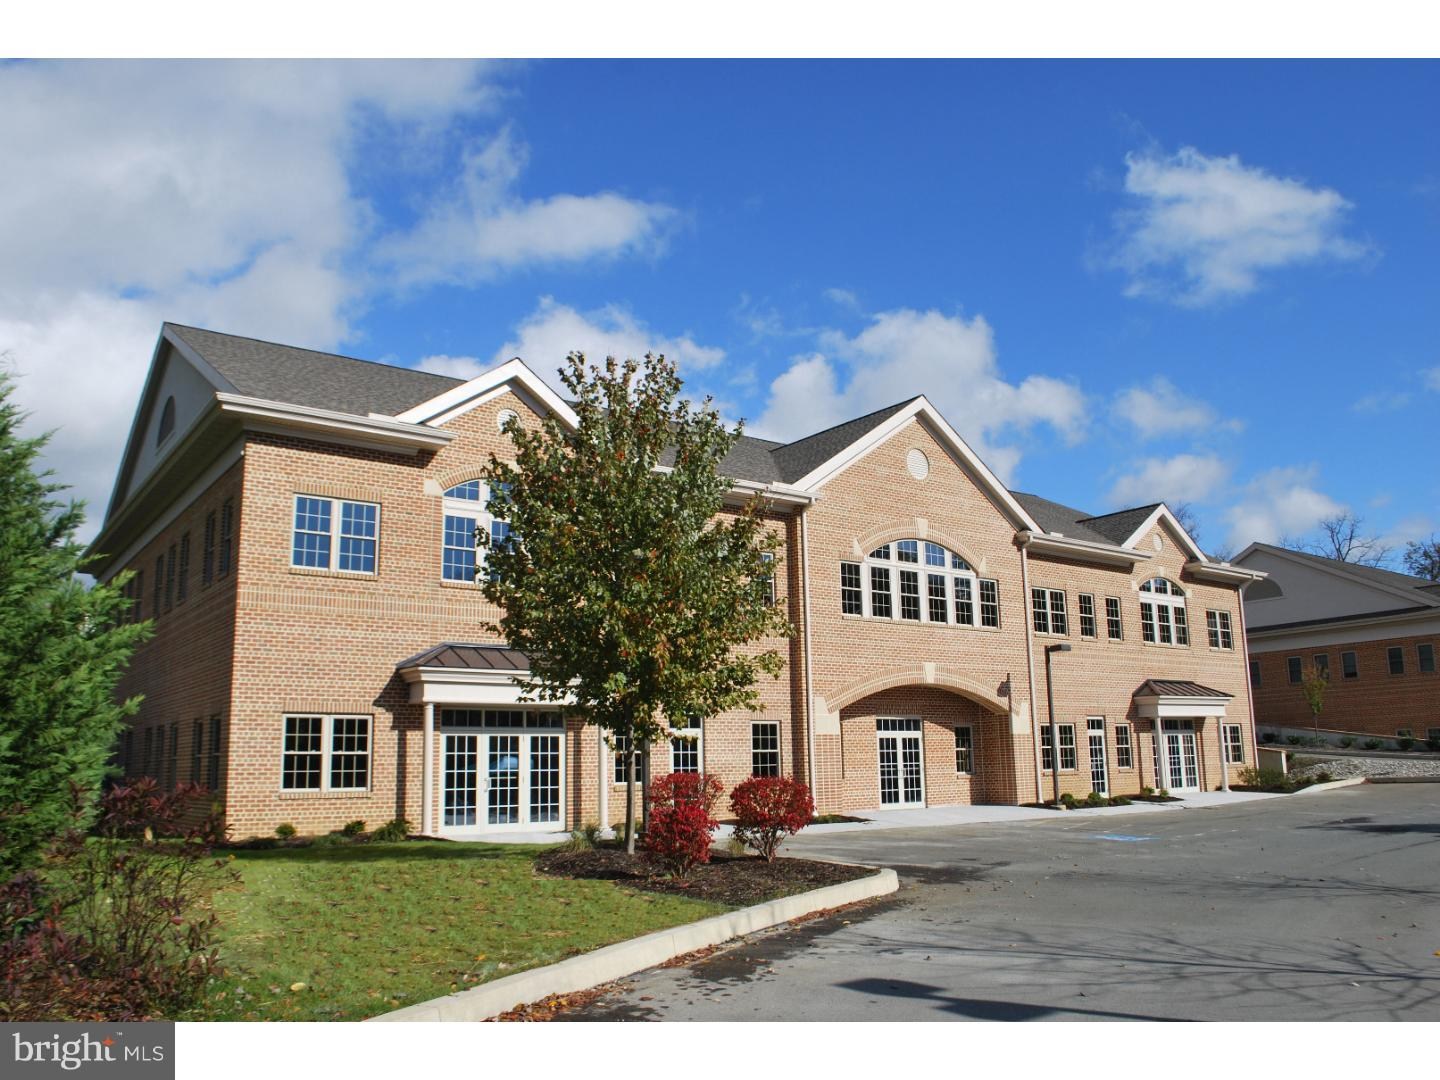 This office suite was most recently utilized as a professional office. Located just 20 miles from Philadelphia at the southwest end of the metro area and 10 miles north of Wilmington, the Beiler-Campbell Business Center provides an opportunity for your business to thrive in the dynamic economy of southeastern Pennsylvania. The Center is attractively seated on 10 professionally landscaped acres along US Route 1, less than one mile from the world-renown Longwood Gardens, major retail, chain and fine-dining restaurants, historic landmarks and booming local business. If you are looking for affordable Class A Office Space in a great location, look no further. The Beiler-Campbell Business Center is the logical choice for your business. Area Attractions include: Longwood  Gardens, Brandywine River Museum, Delaware Museum of Natural History, John Chads House, Chadds Ford Historical Society, Brandywine Battlefield State Park, Chadds Ford Winery and Winterthur Museum. This is a NNN Lease.